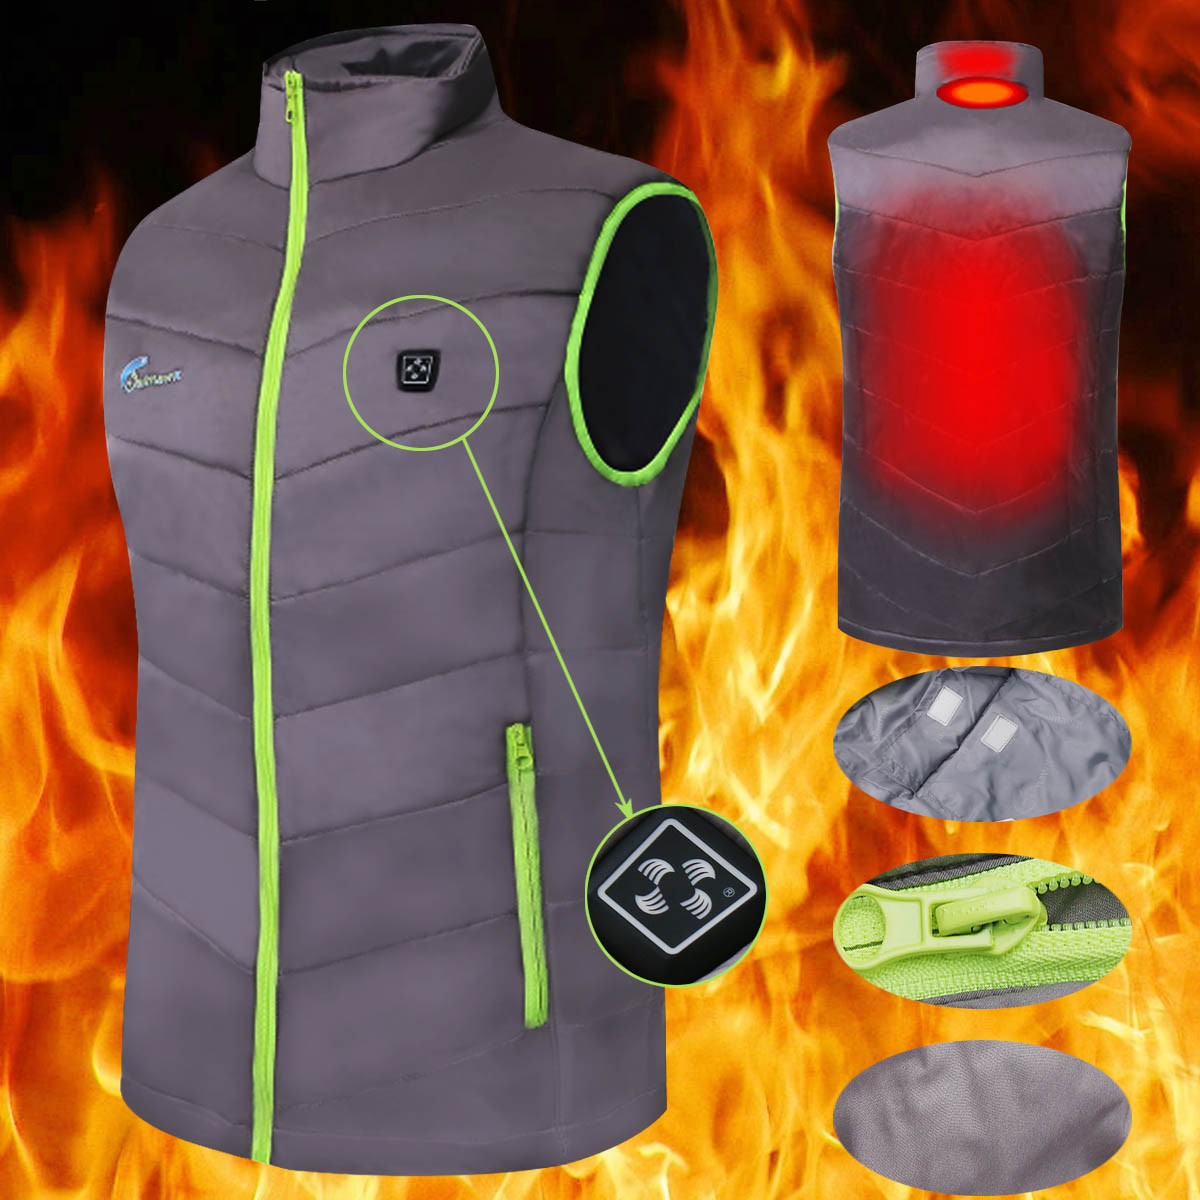 Men Women Electric Heated Vest Heating Waistcoat Thermal Warm Clothing Feather USB Power Sleeveless Gray JacketMen Women Electric Heated Vest Heating Waistcoat Thermal Warm Clothing Feather USB Power Sleeveless Gray Jacket